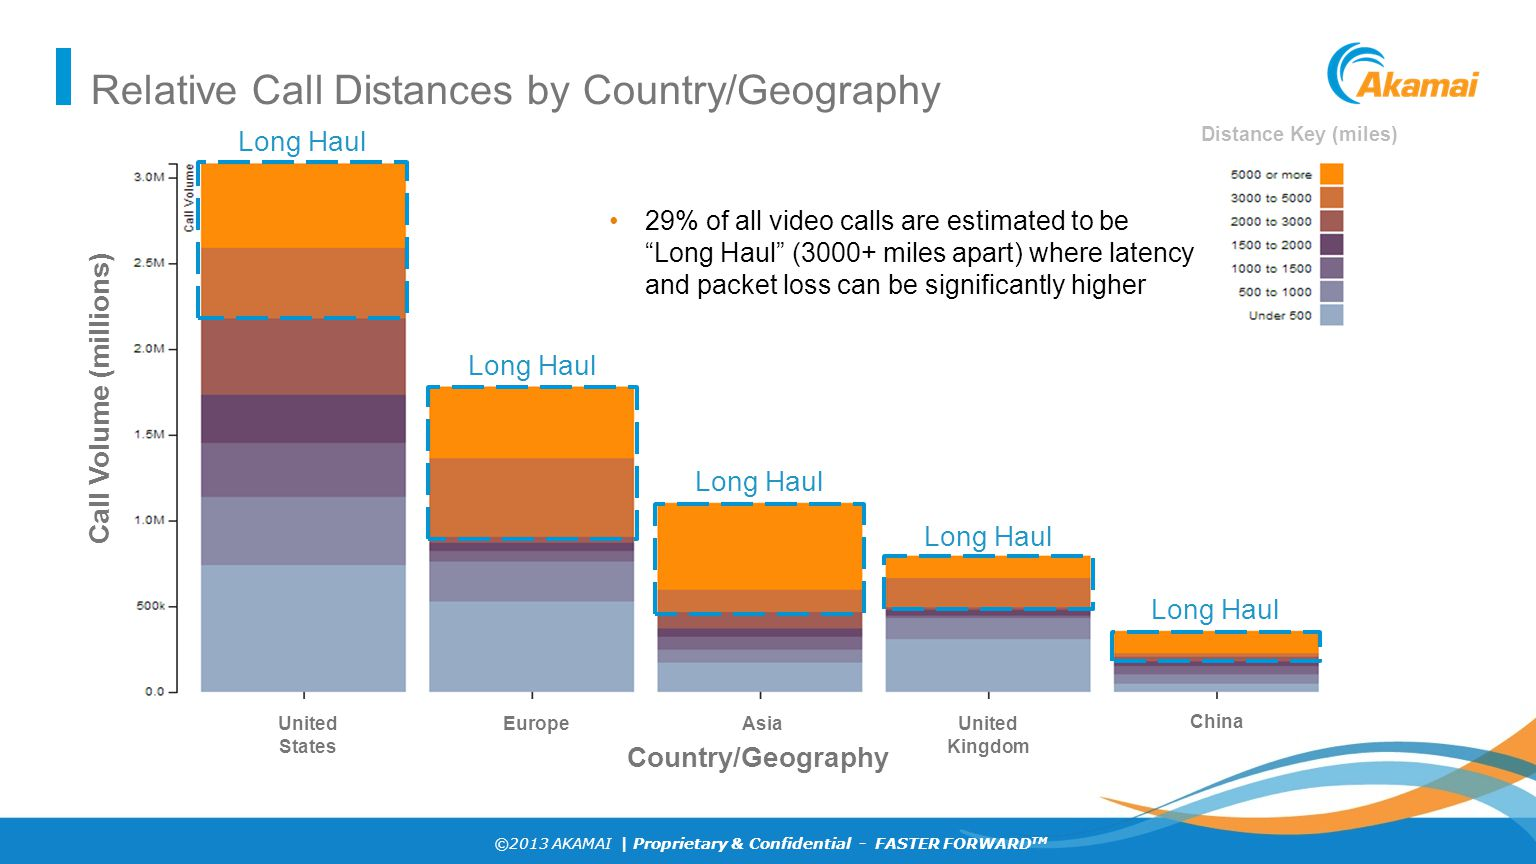 Relative Call Distances by Country/Geography